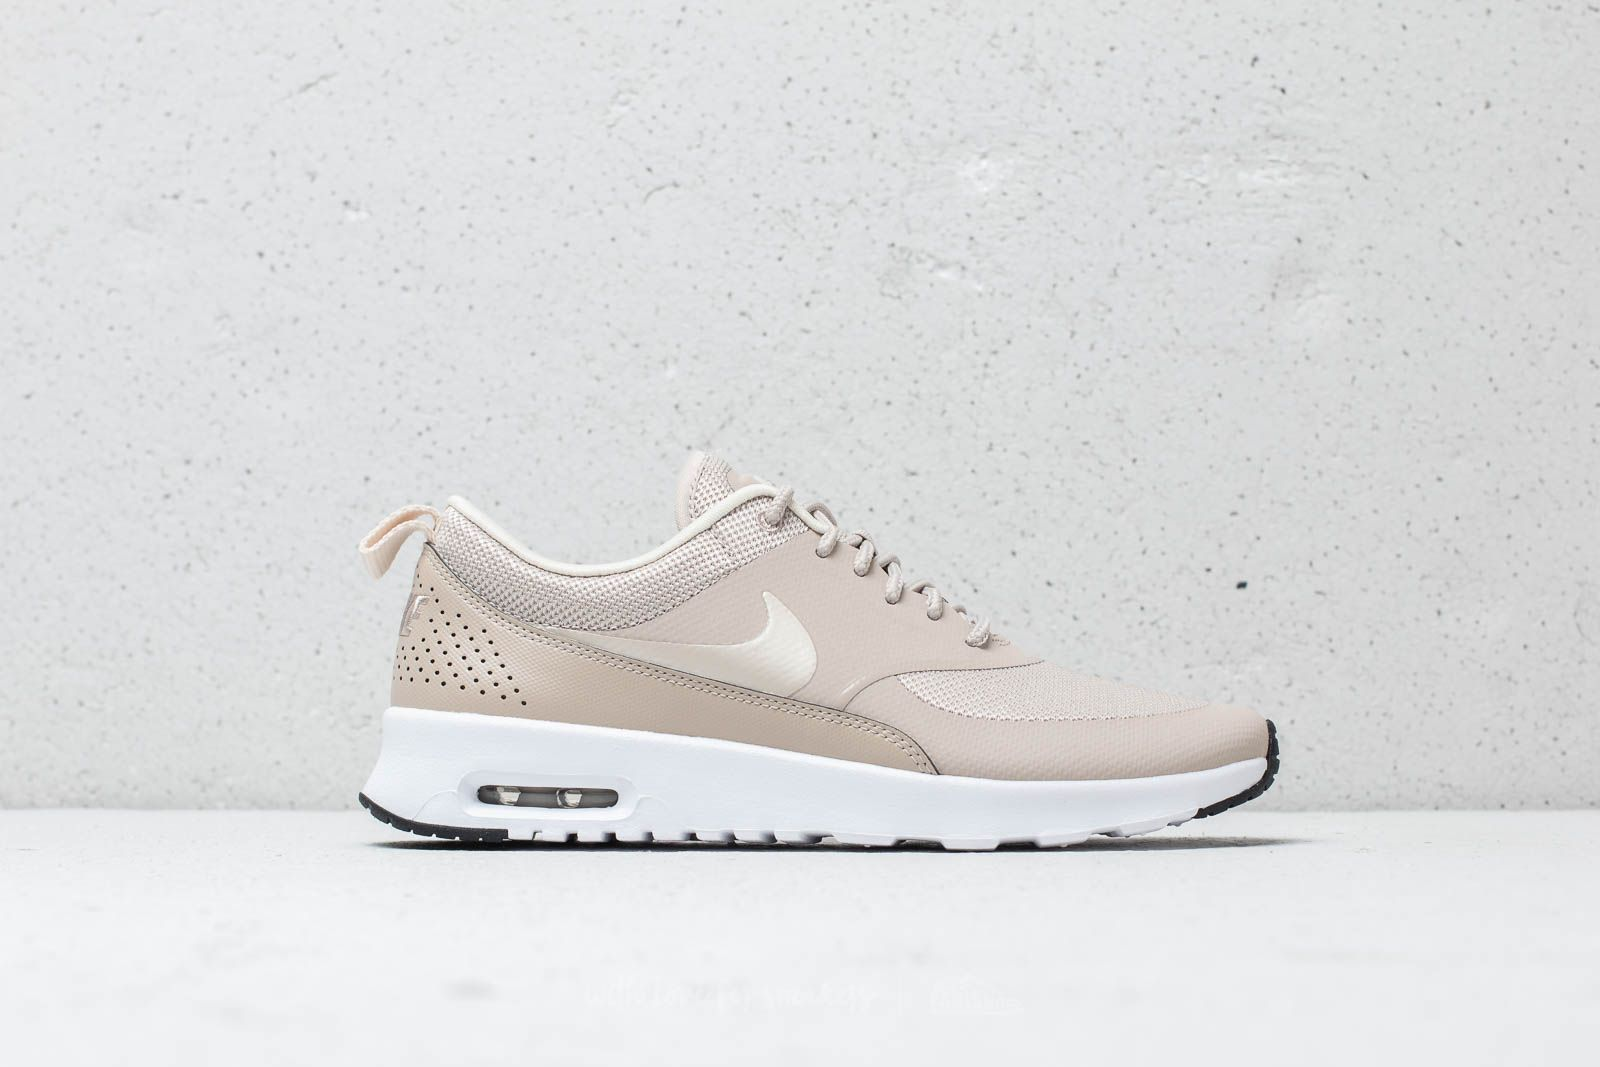 966fbfd422ce Nike Wmns Air Max Thea String  Light Cream-Black-White at a great